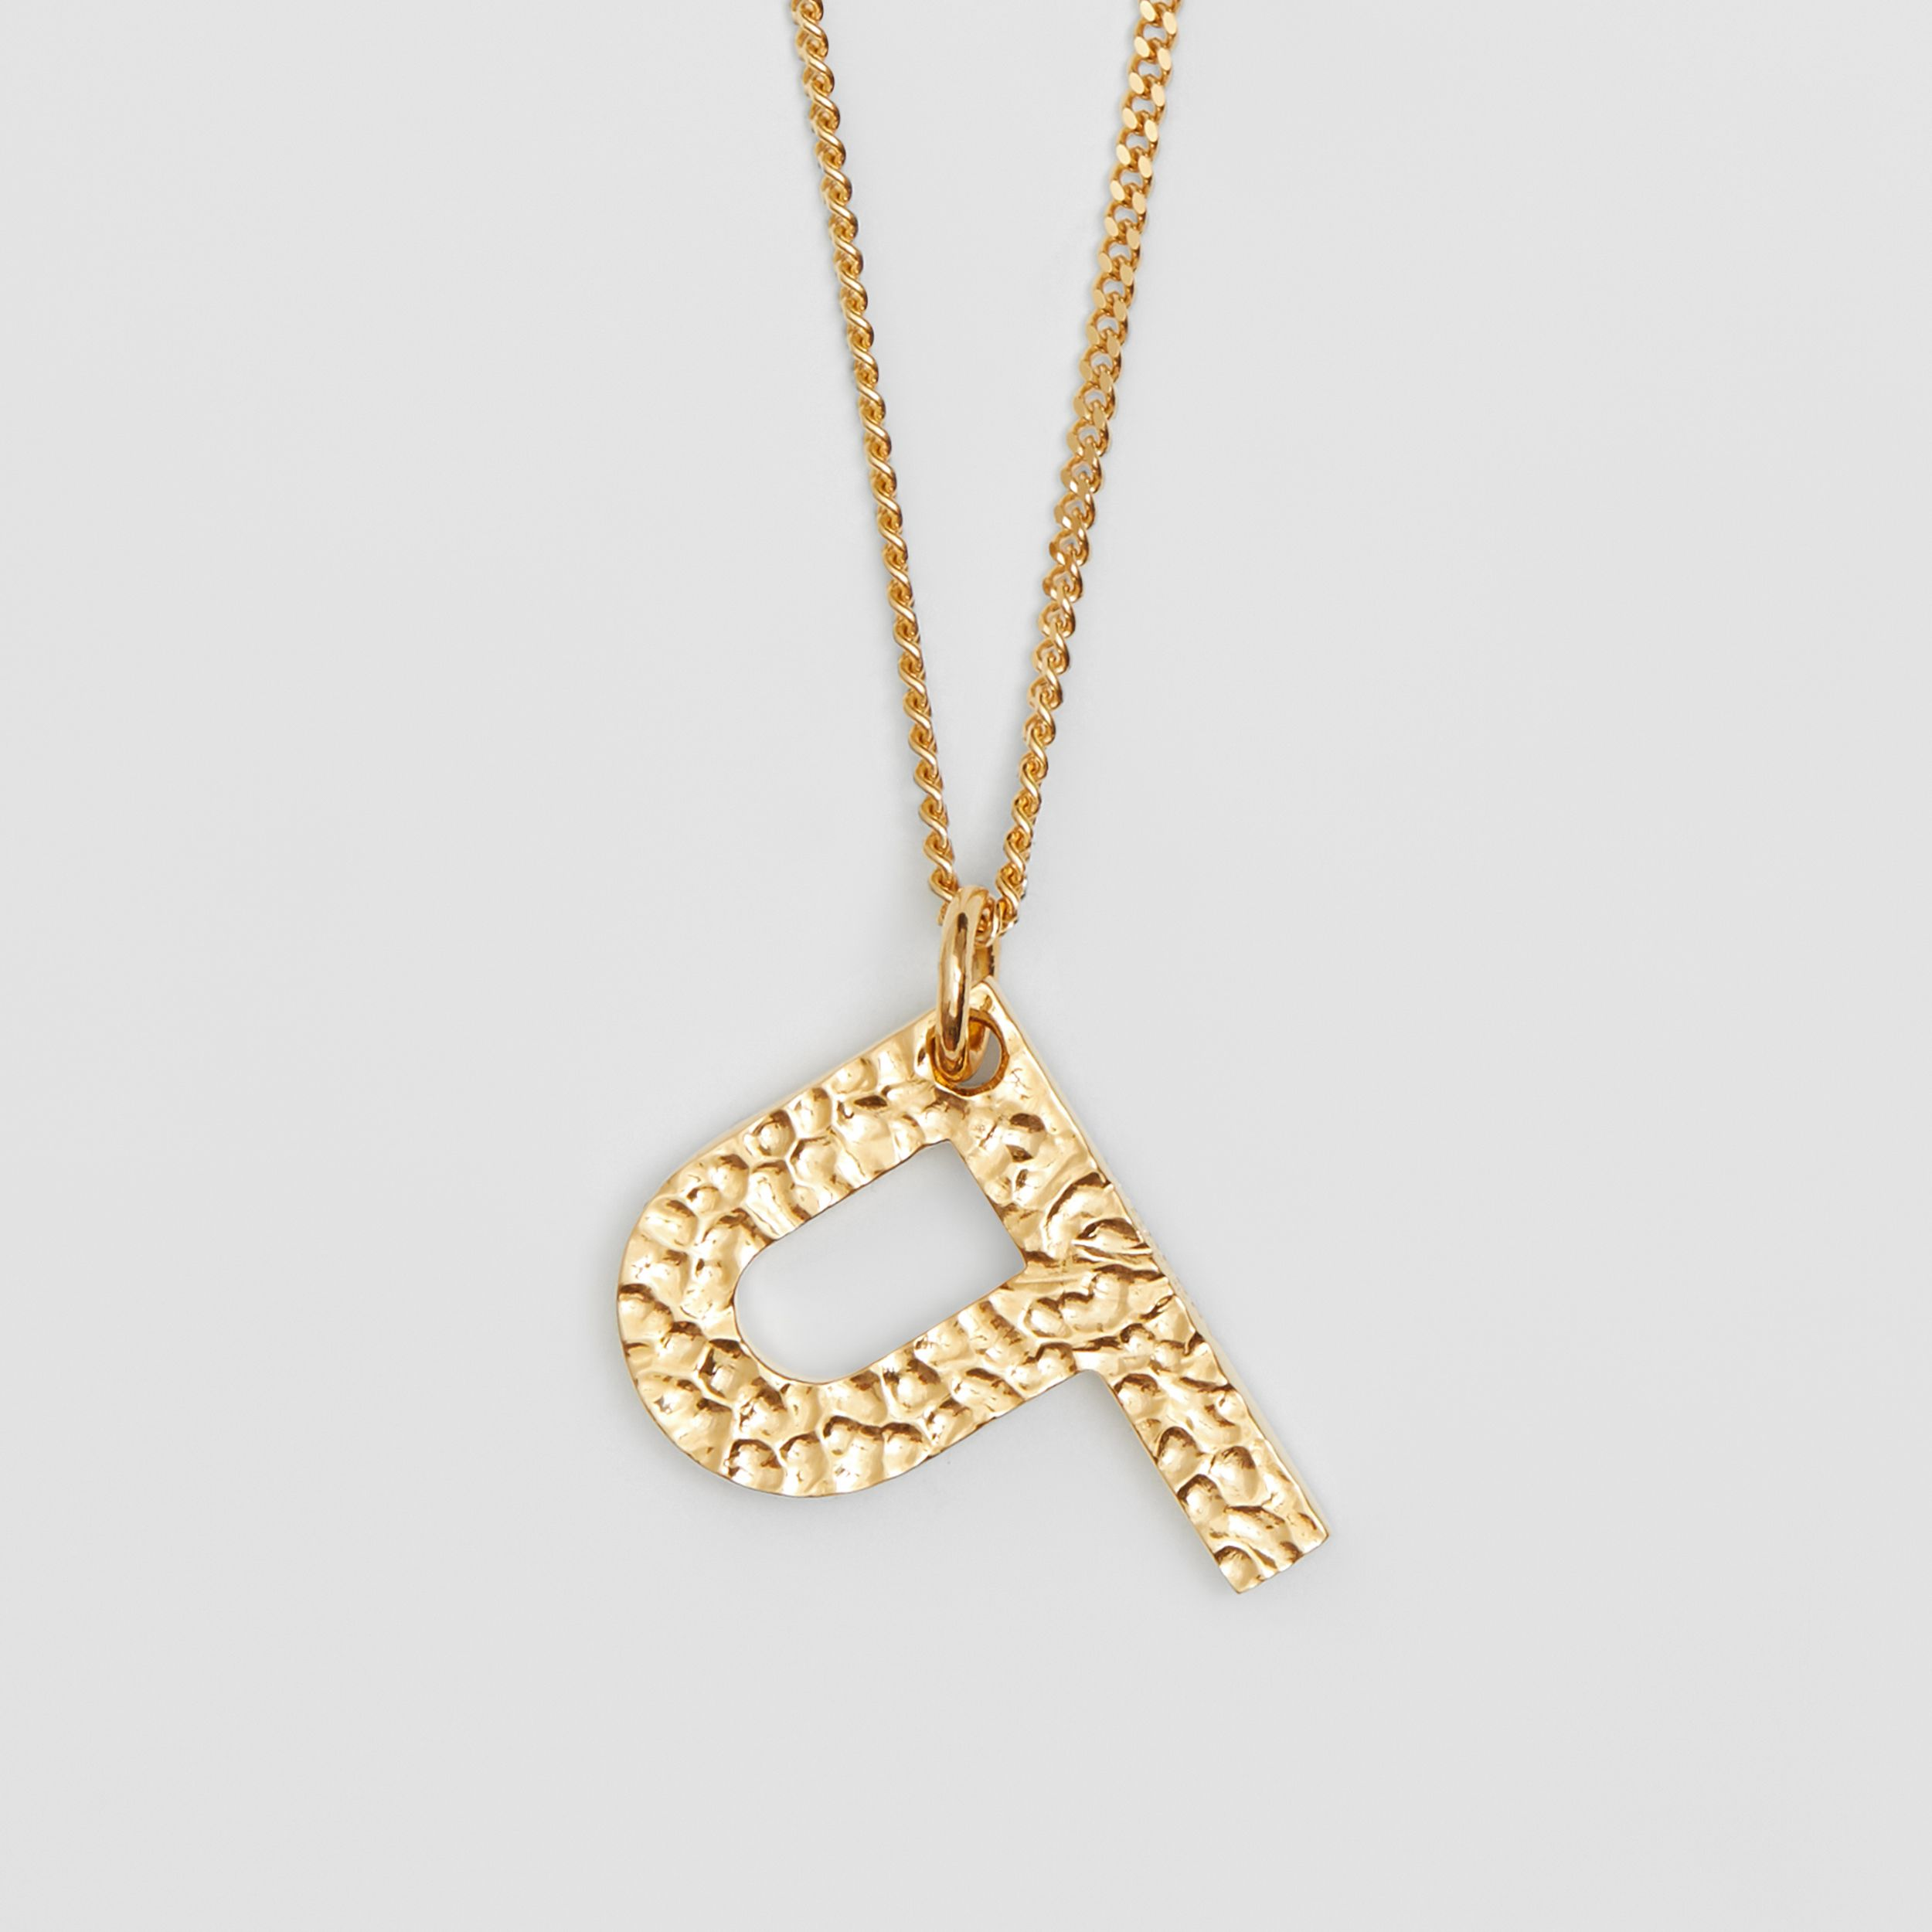 'P' Alphabet Charm Gold-plated Necklace in Light - Women | Burberry - 3